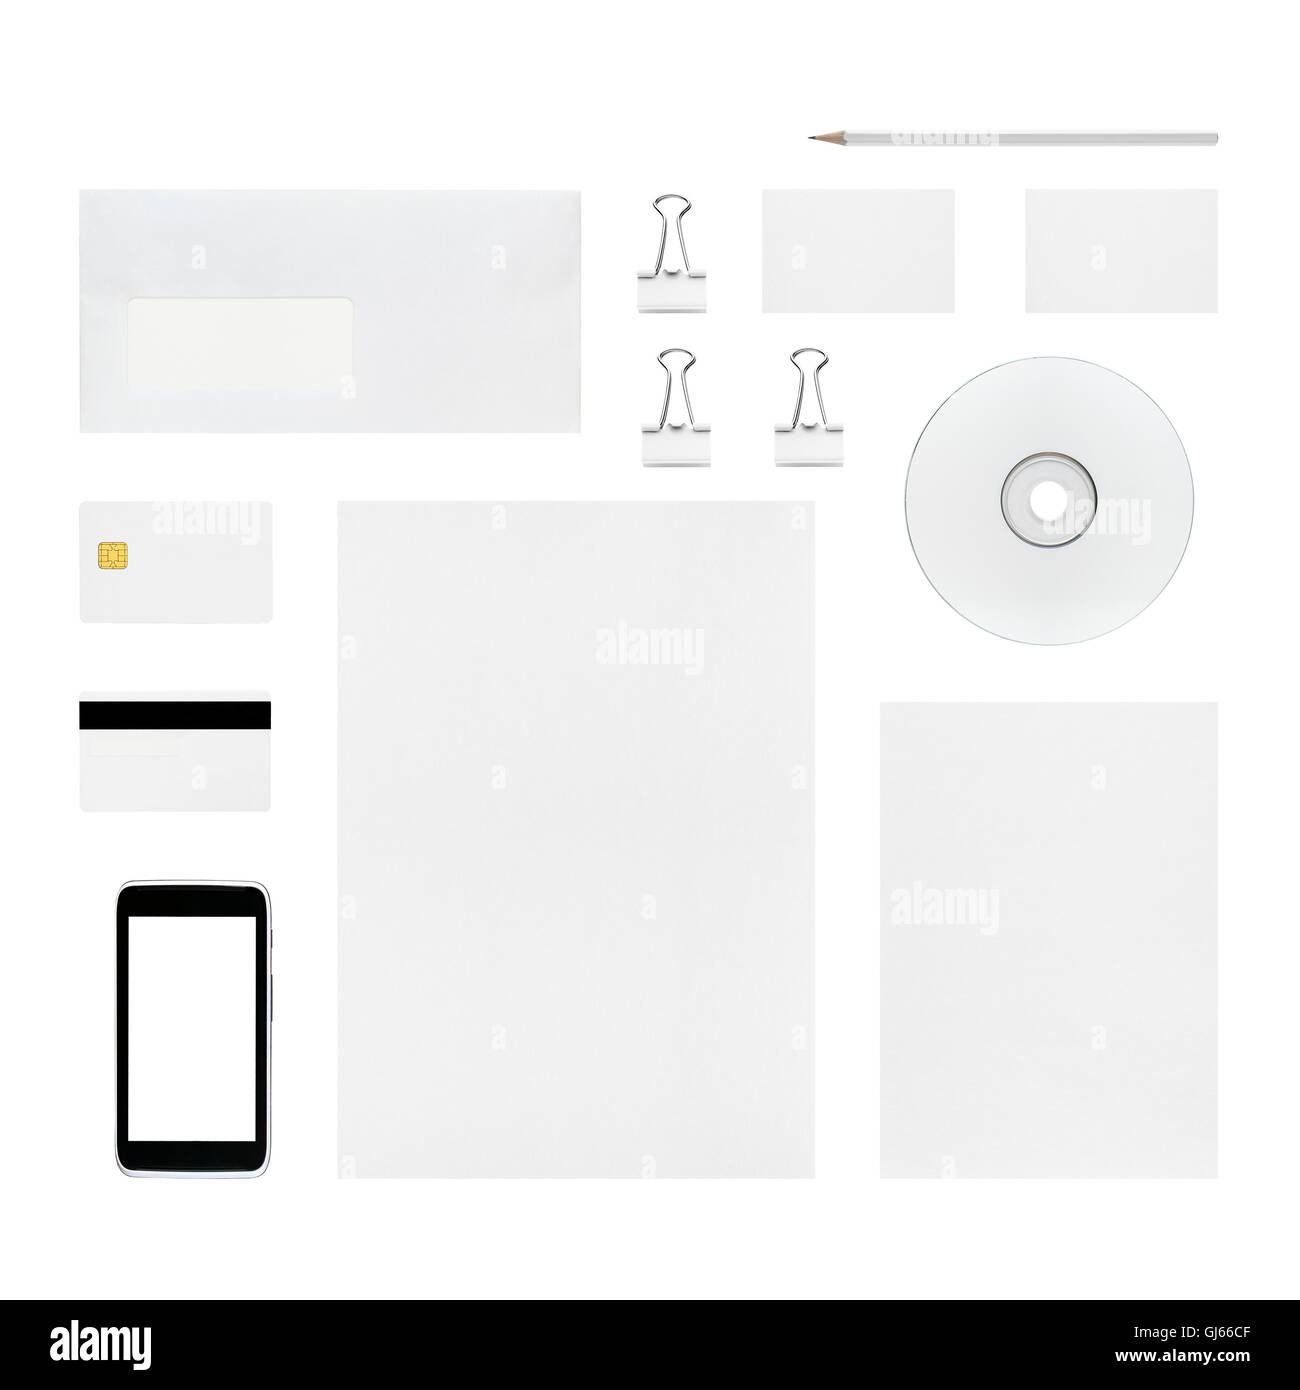 Isolated objects for branding identity - letterhead, business cards ...